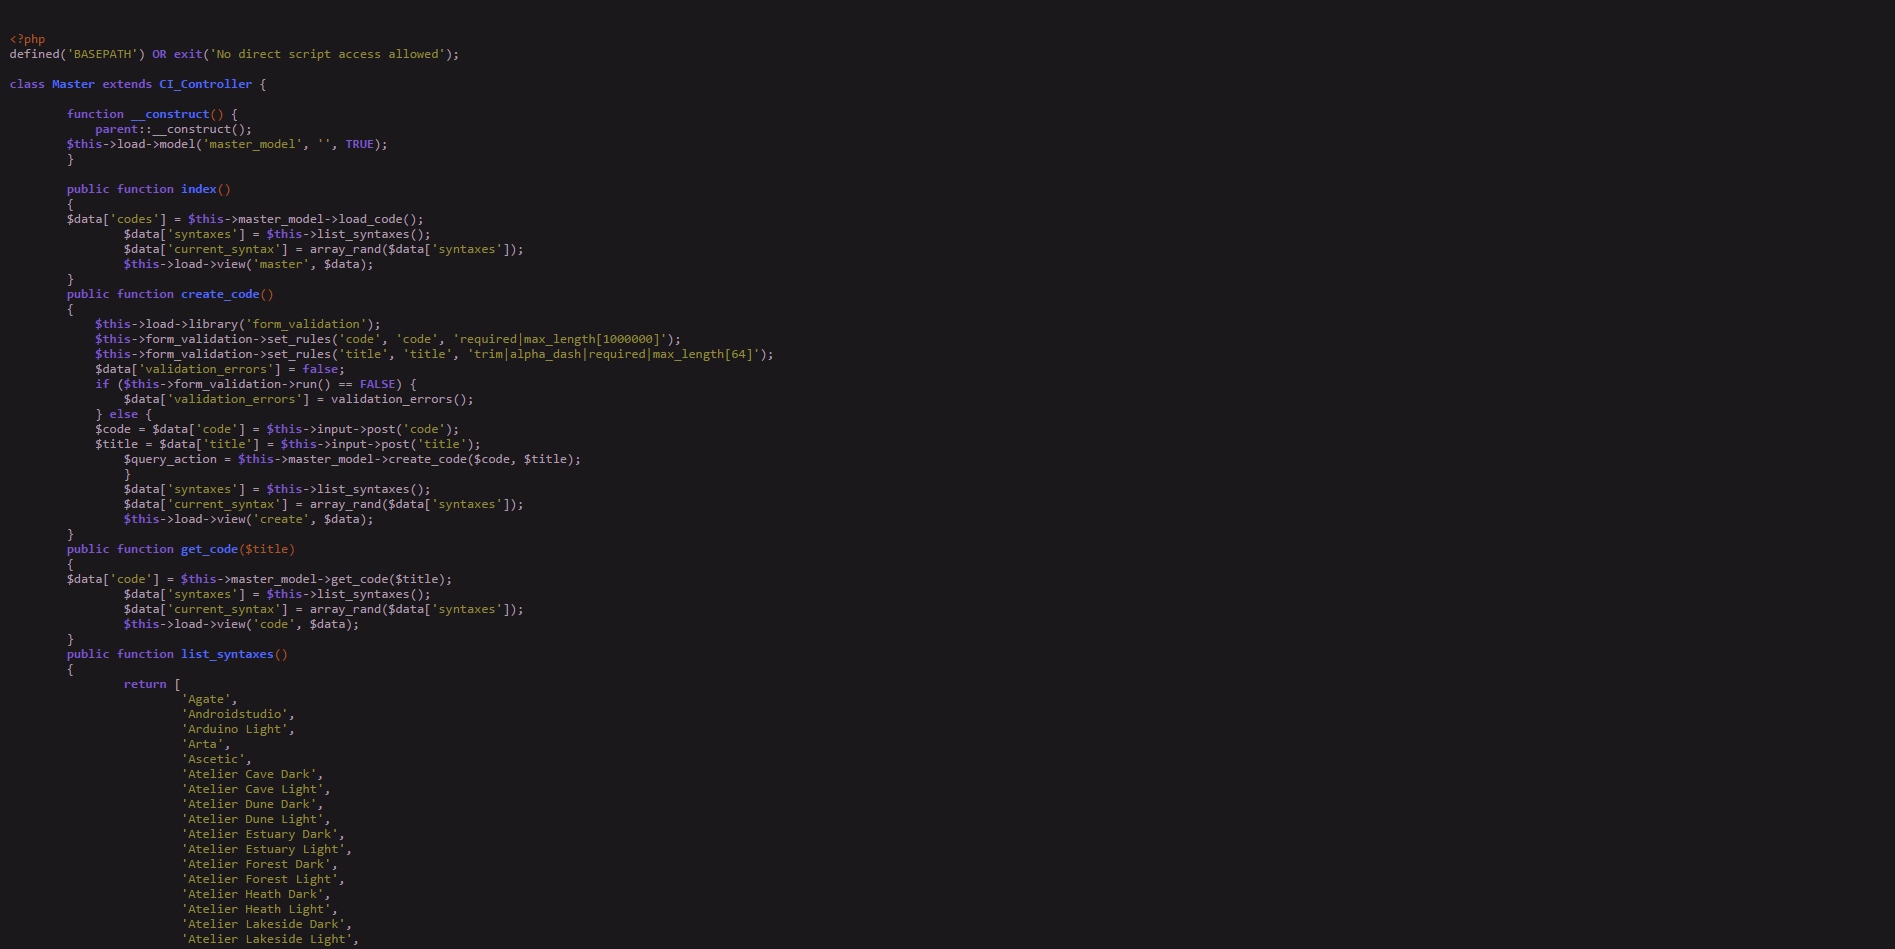 fivehundred